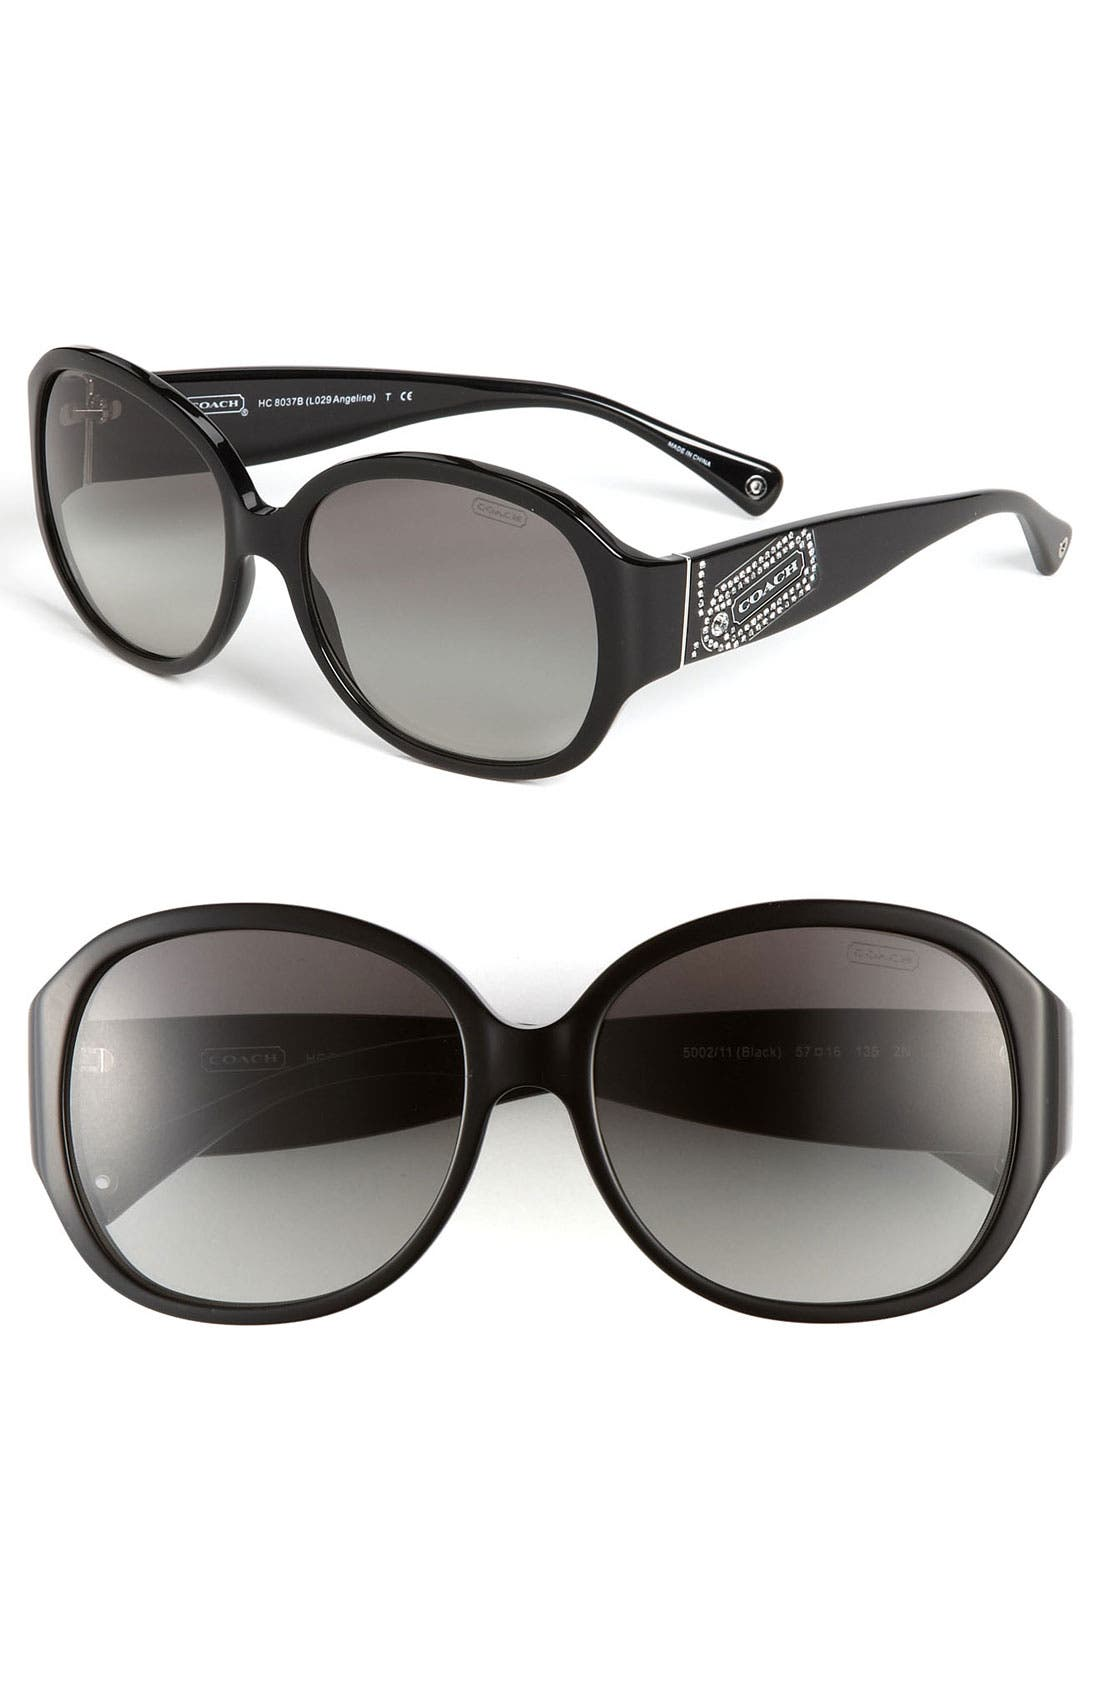 Alternate Image 1 Selected - COACH 'Angeline' 57mm Gradient Oversized Sunglasses